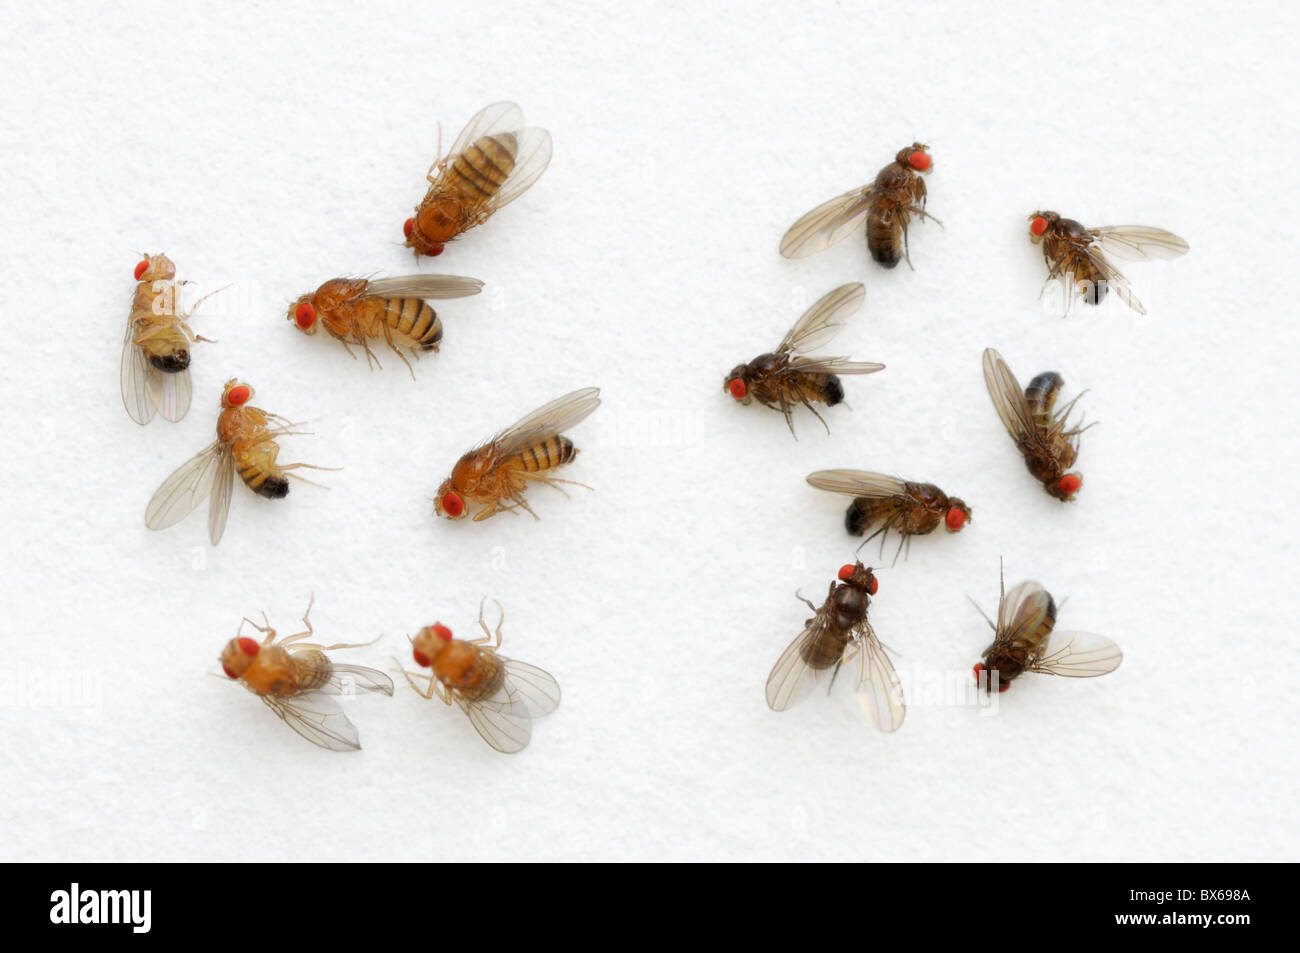 Fruit Fly Drosophila Melanogaster Color Variation On